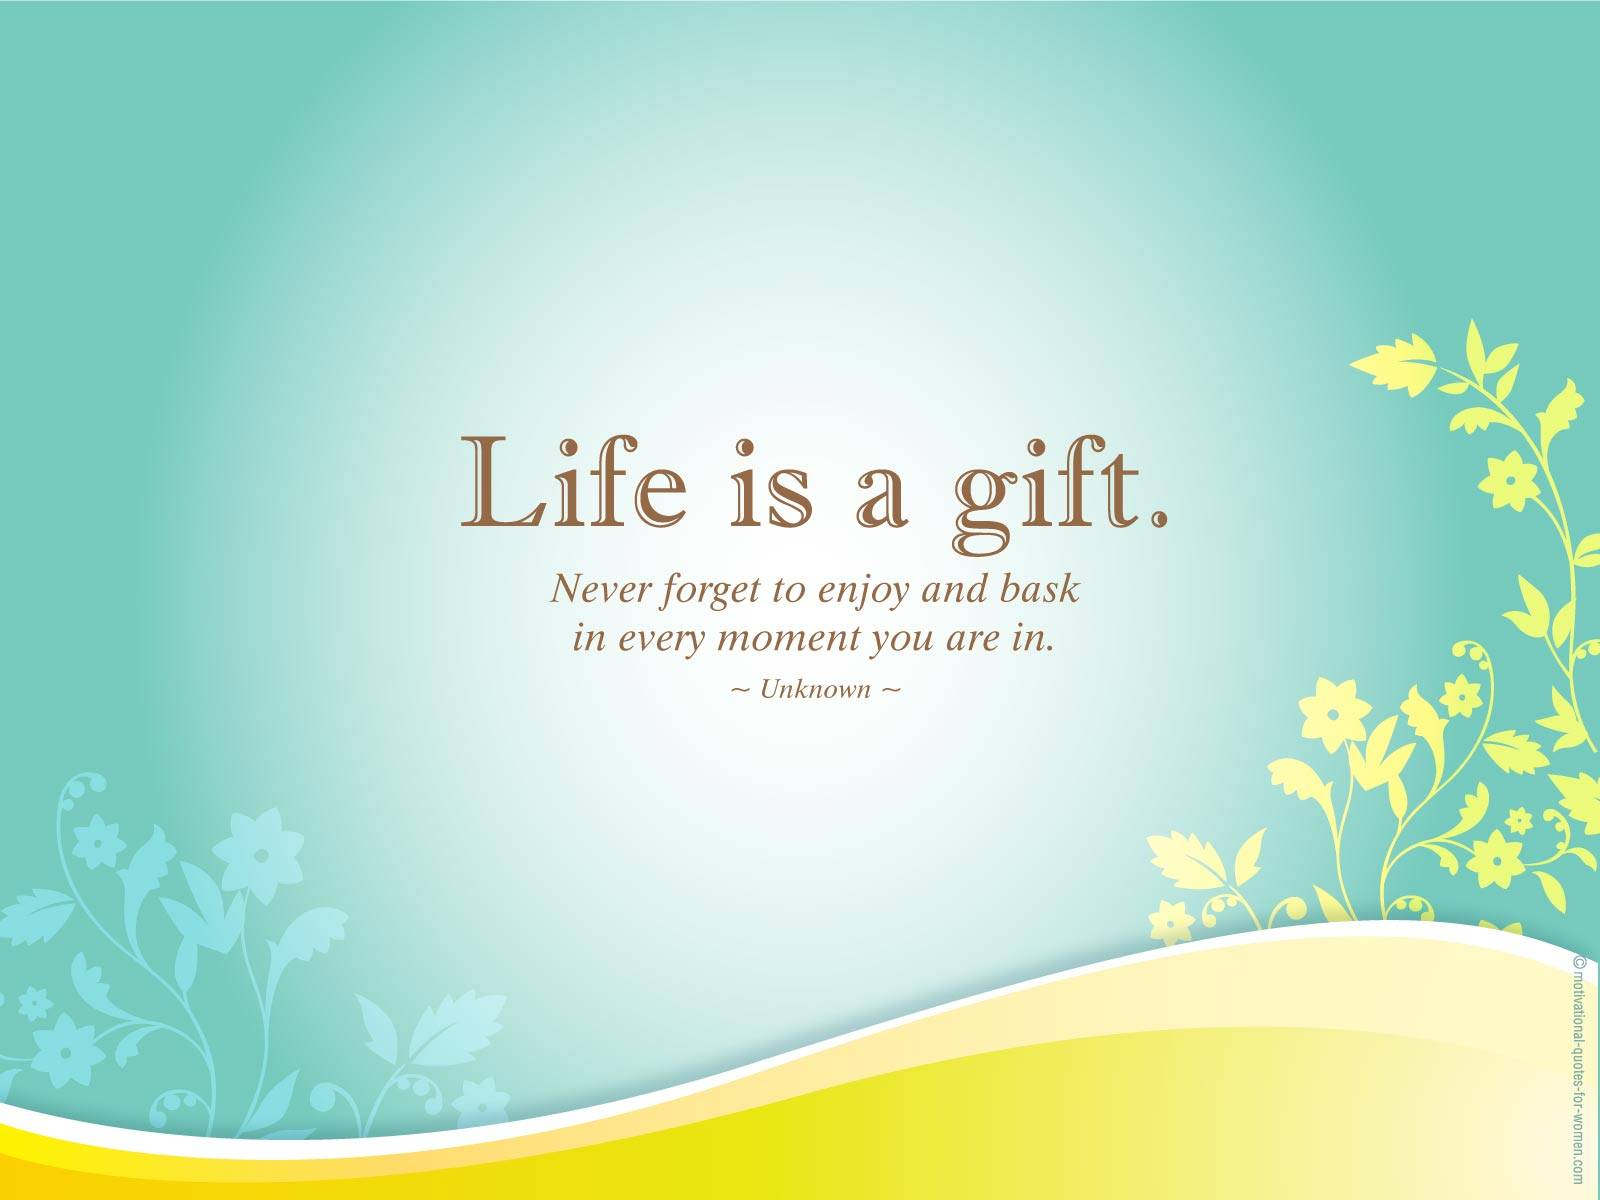 Short Inspirational Quotes About Life 25 Short Inspirational Quotes About Life And Success